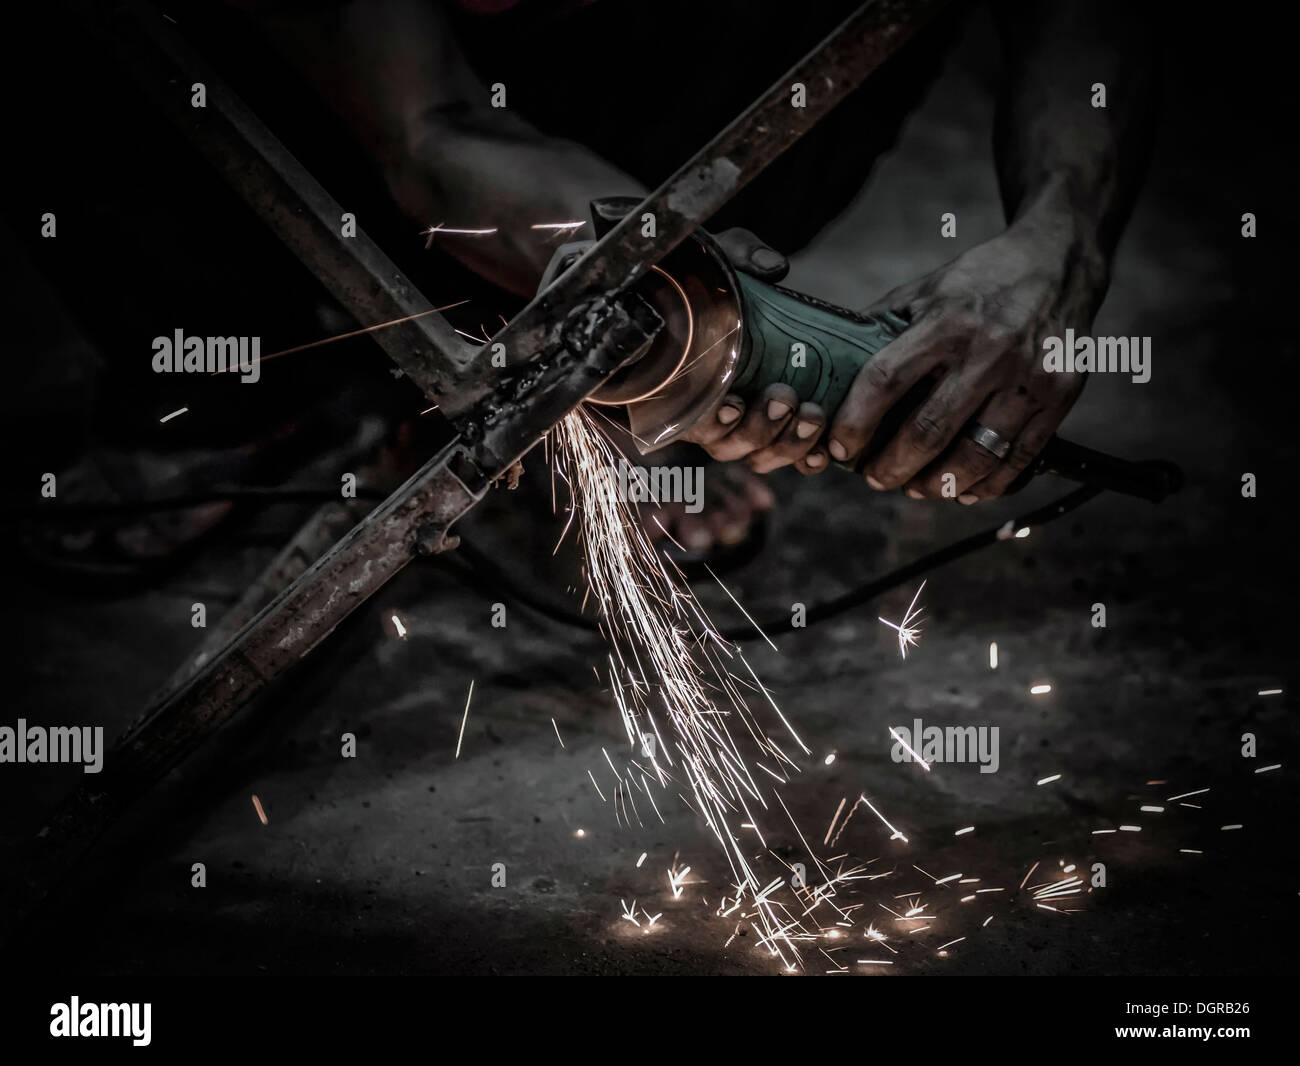 Sparks flying from a metalworker using a hand grinding power tool - Stock Image